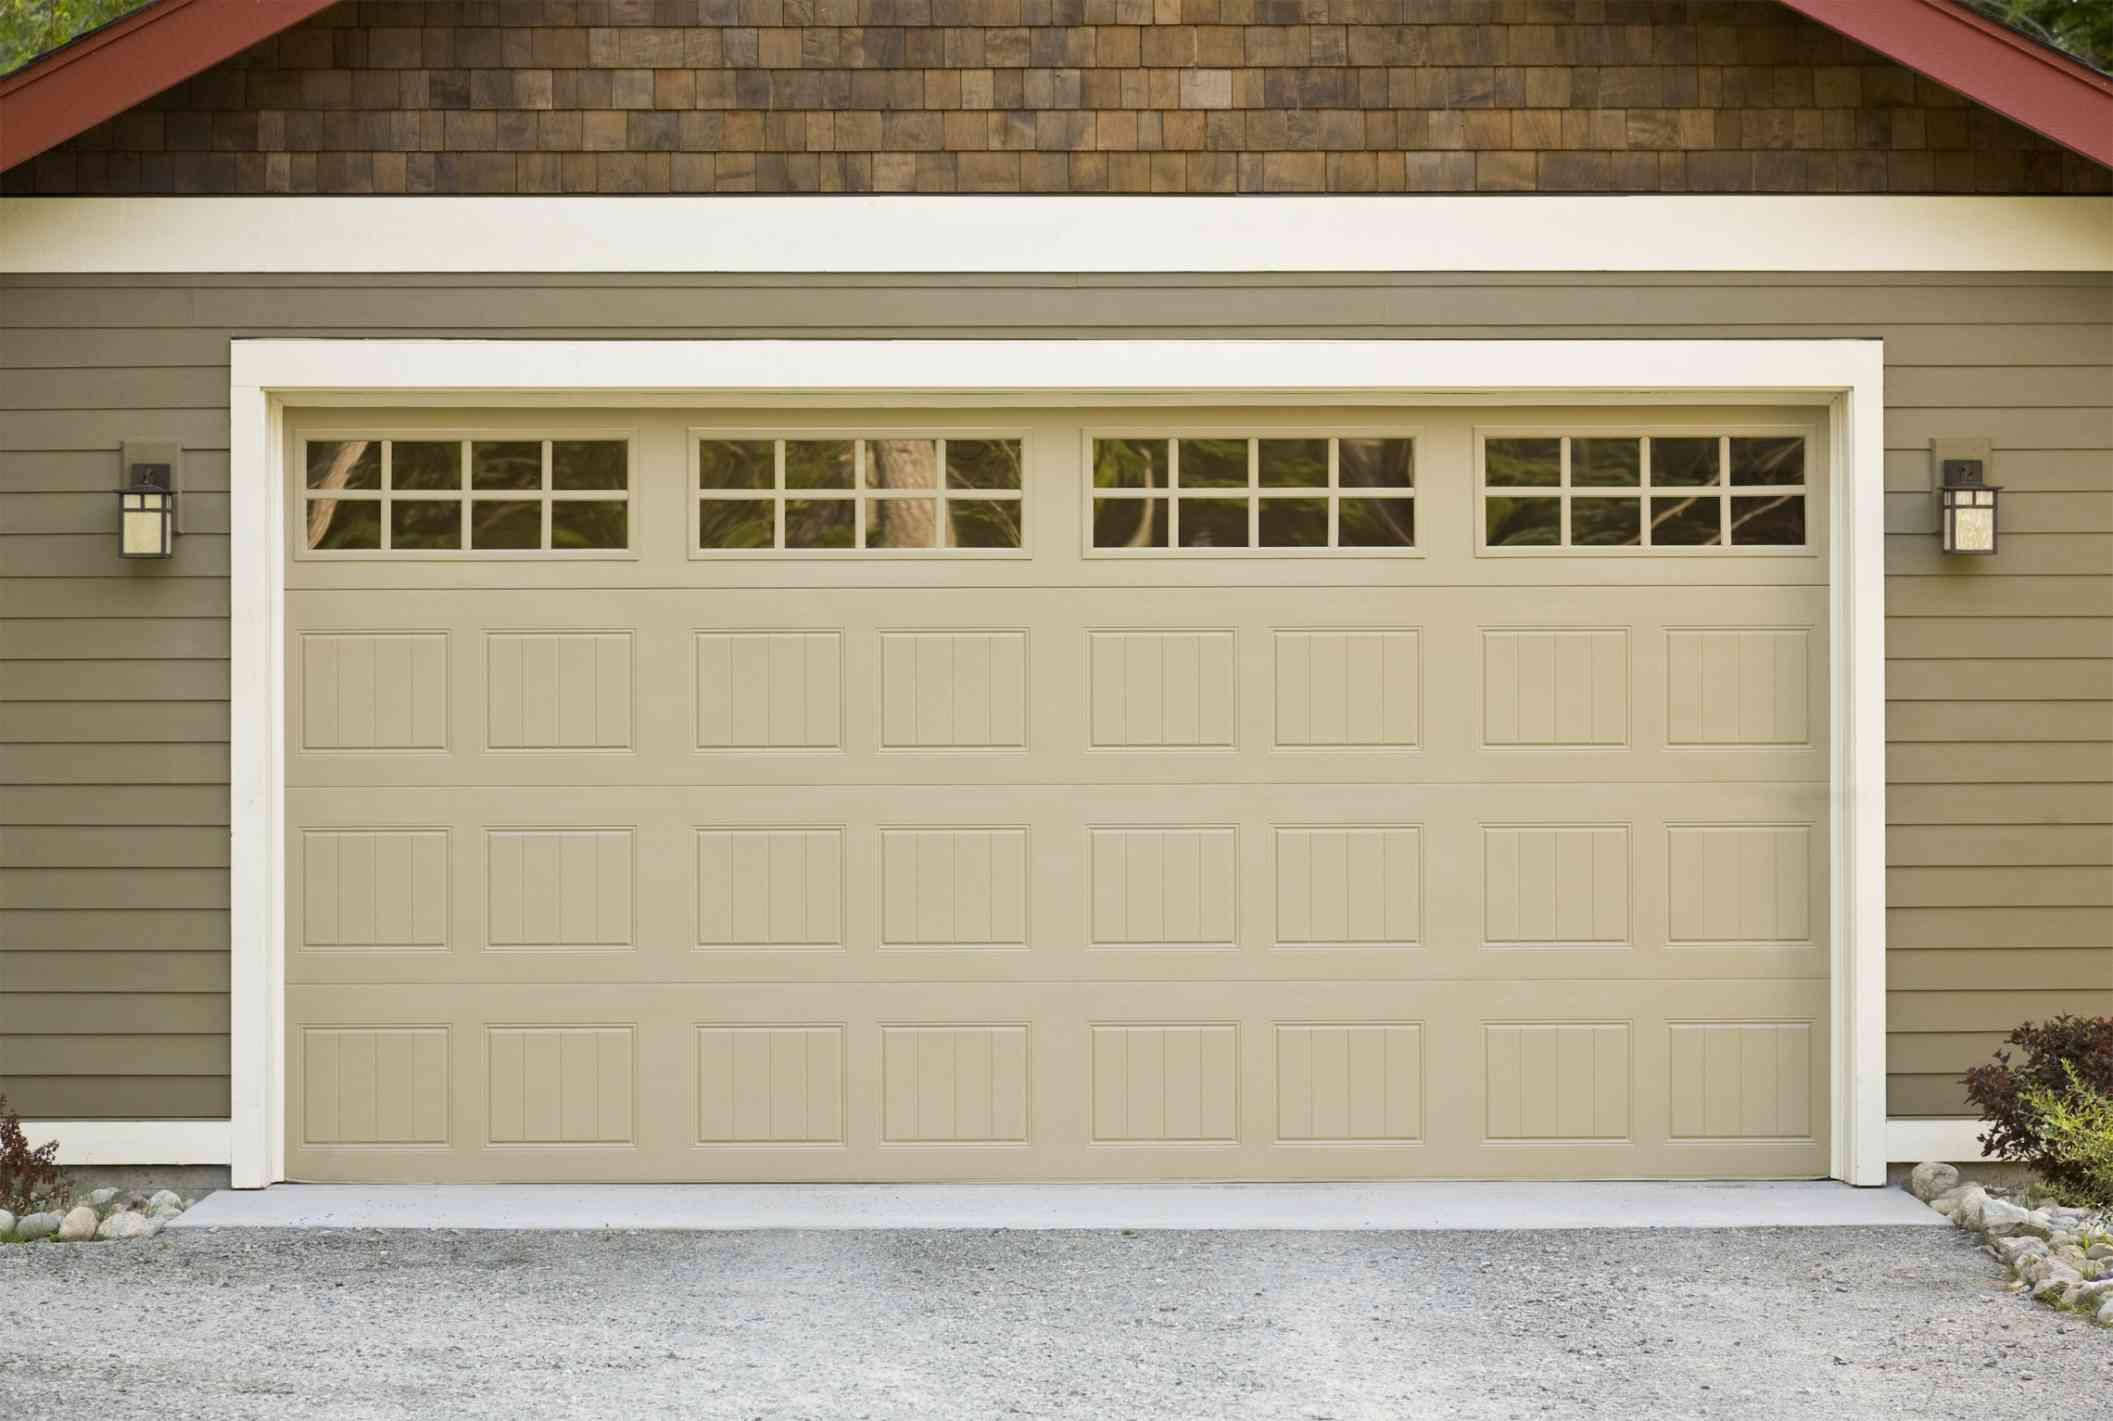 opener cost themiracle door canada new ideas installation double luxury biz garage spring depot costco home